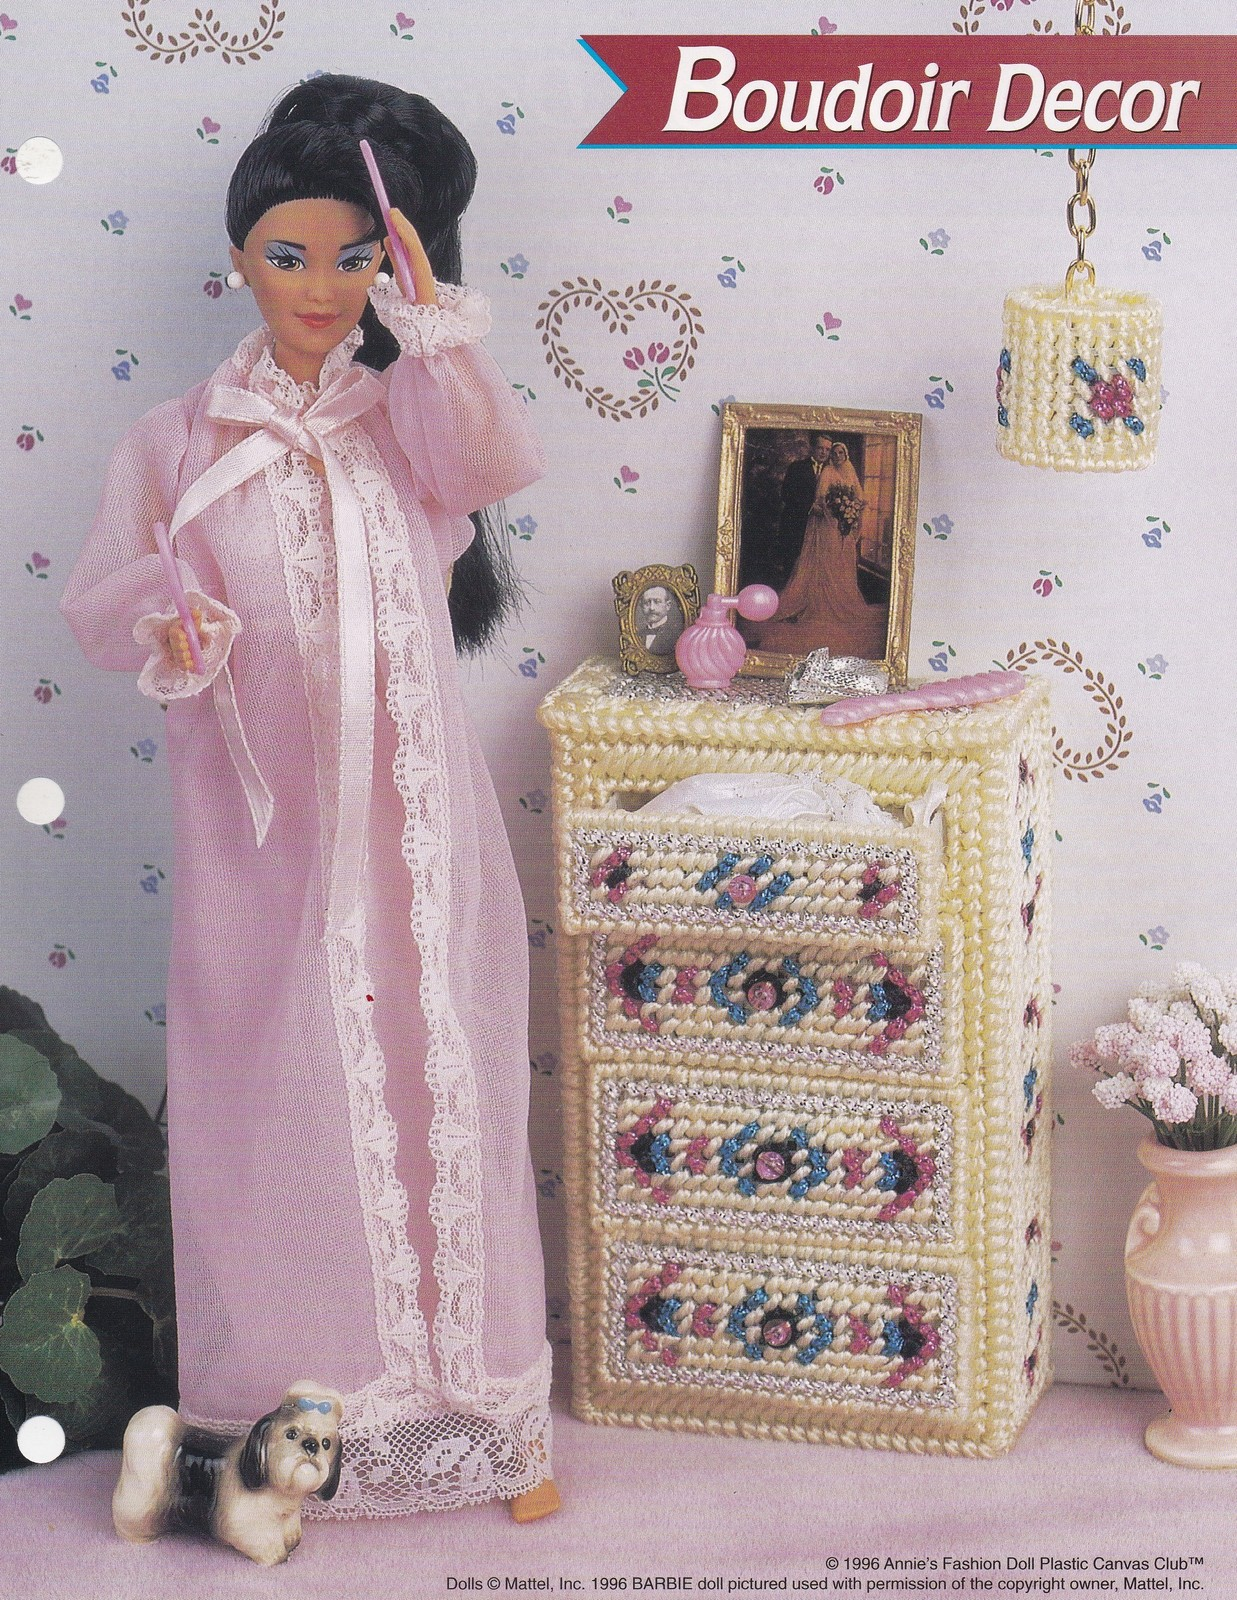 Primary image for Boudoir Décor, Annie's Fashion Doll Plastic Canvas Pattern Club Leaflet FP15-03